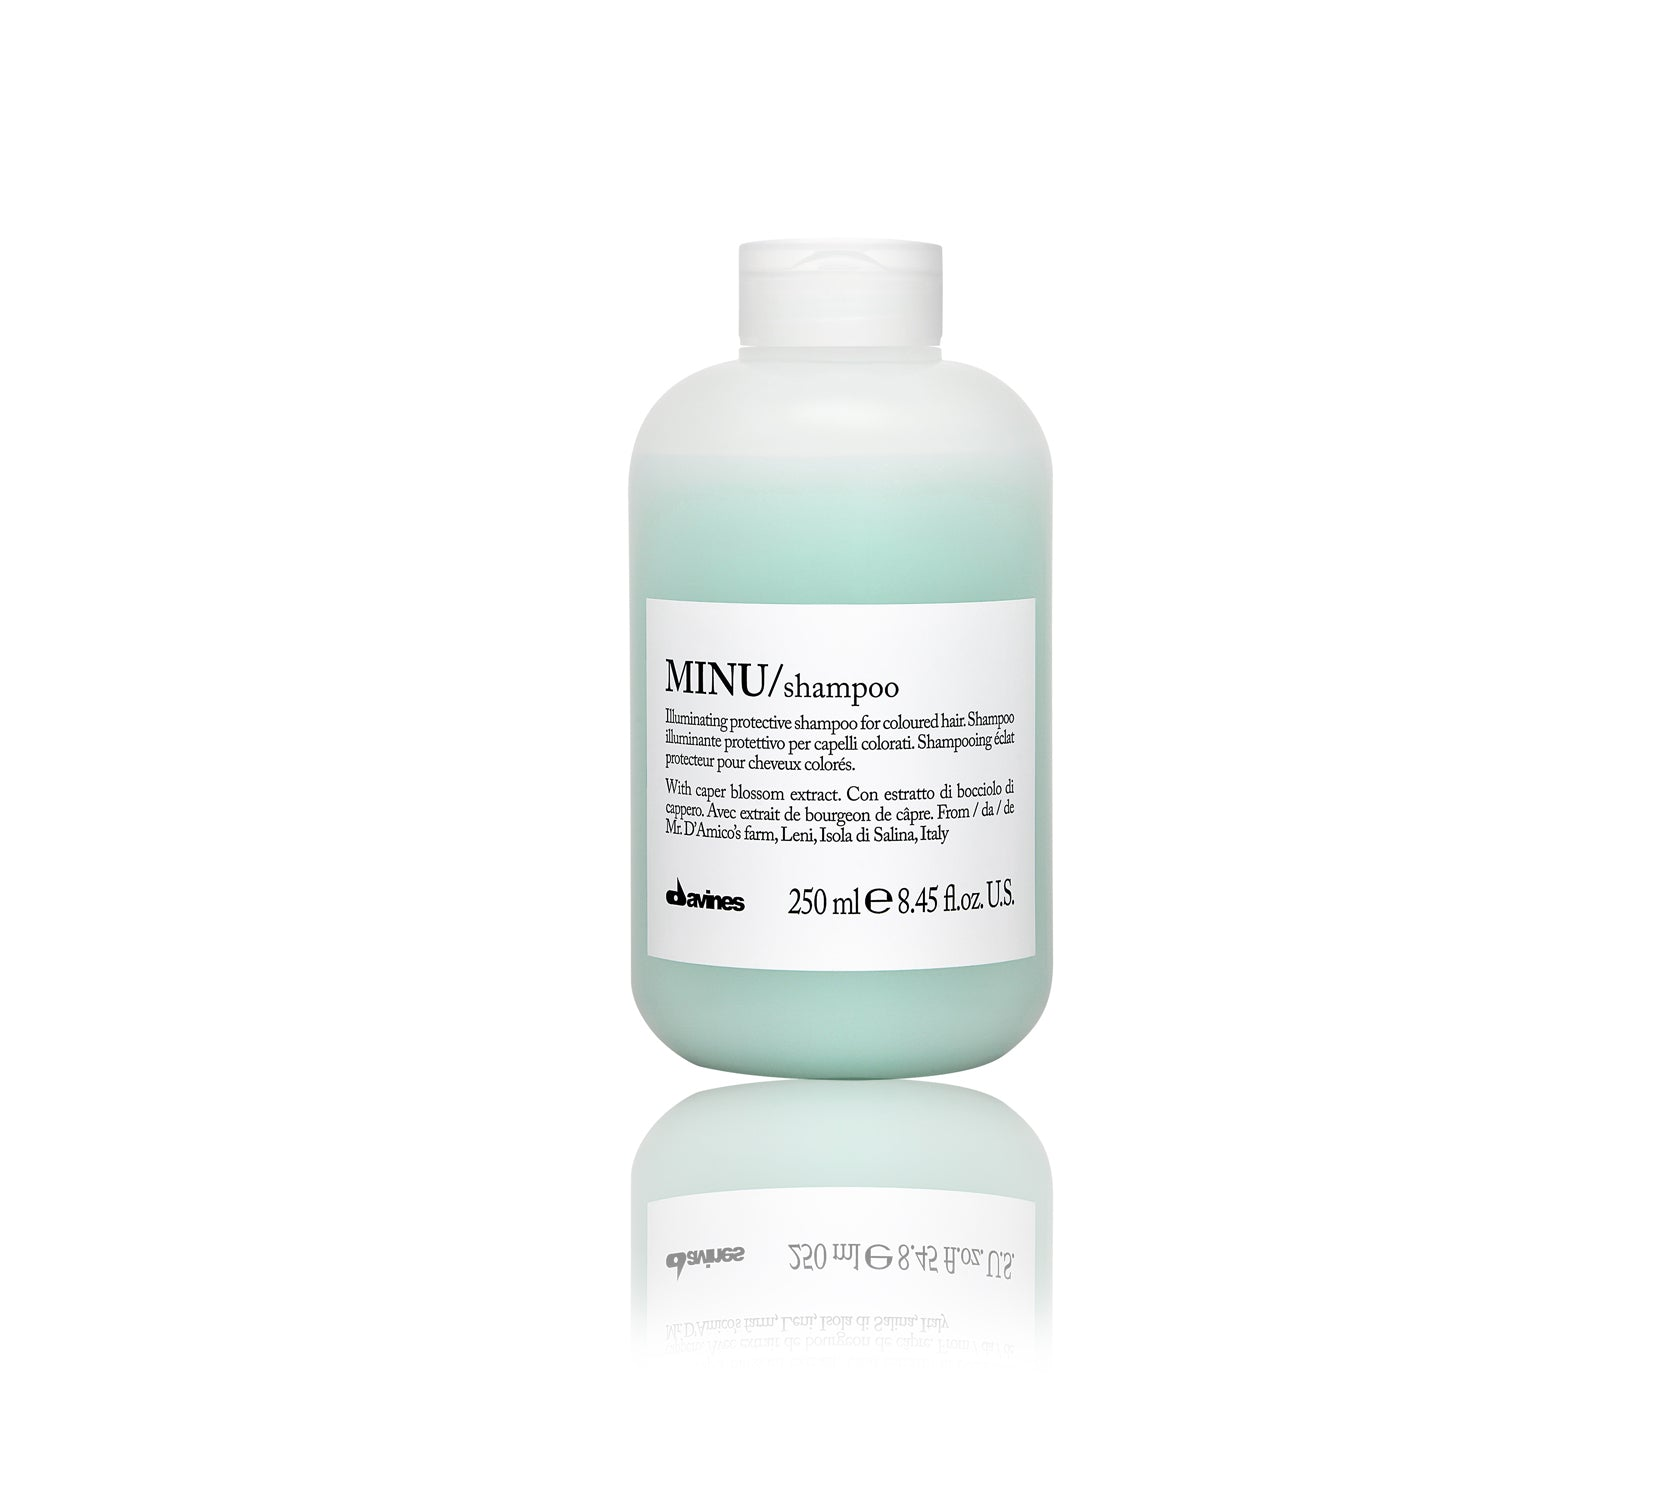 MINU Shampoo (For Colored Hair)